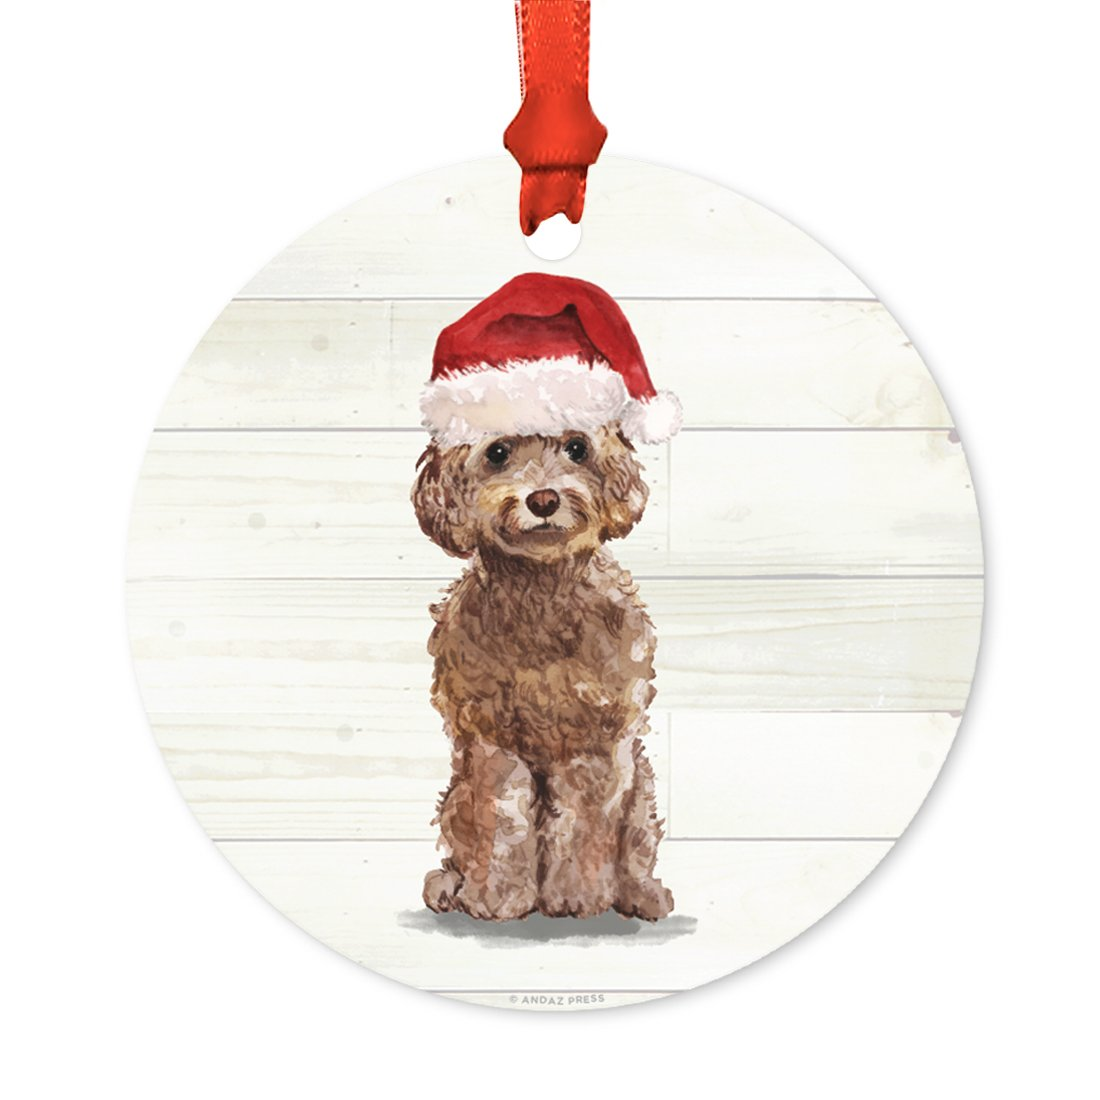 Andaz Press Animal Pet Dog Metal Christmas Ornament, Brown Cockapoo with Santa Hat, 1-Pack, Includes Ribbon and Gift Bag